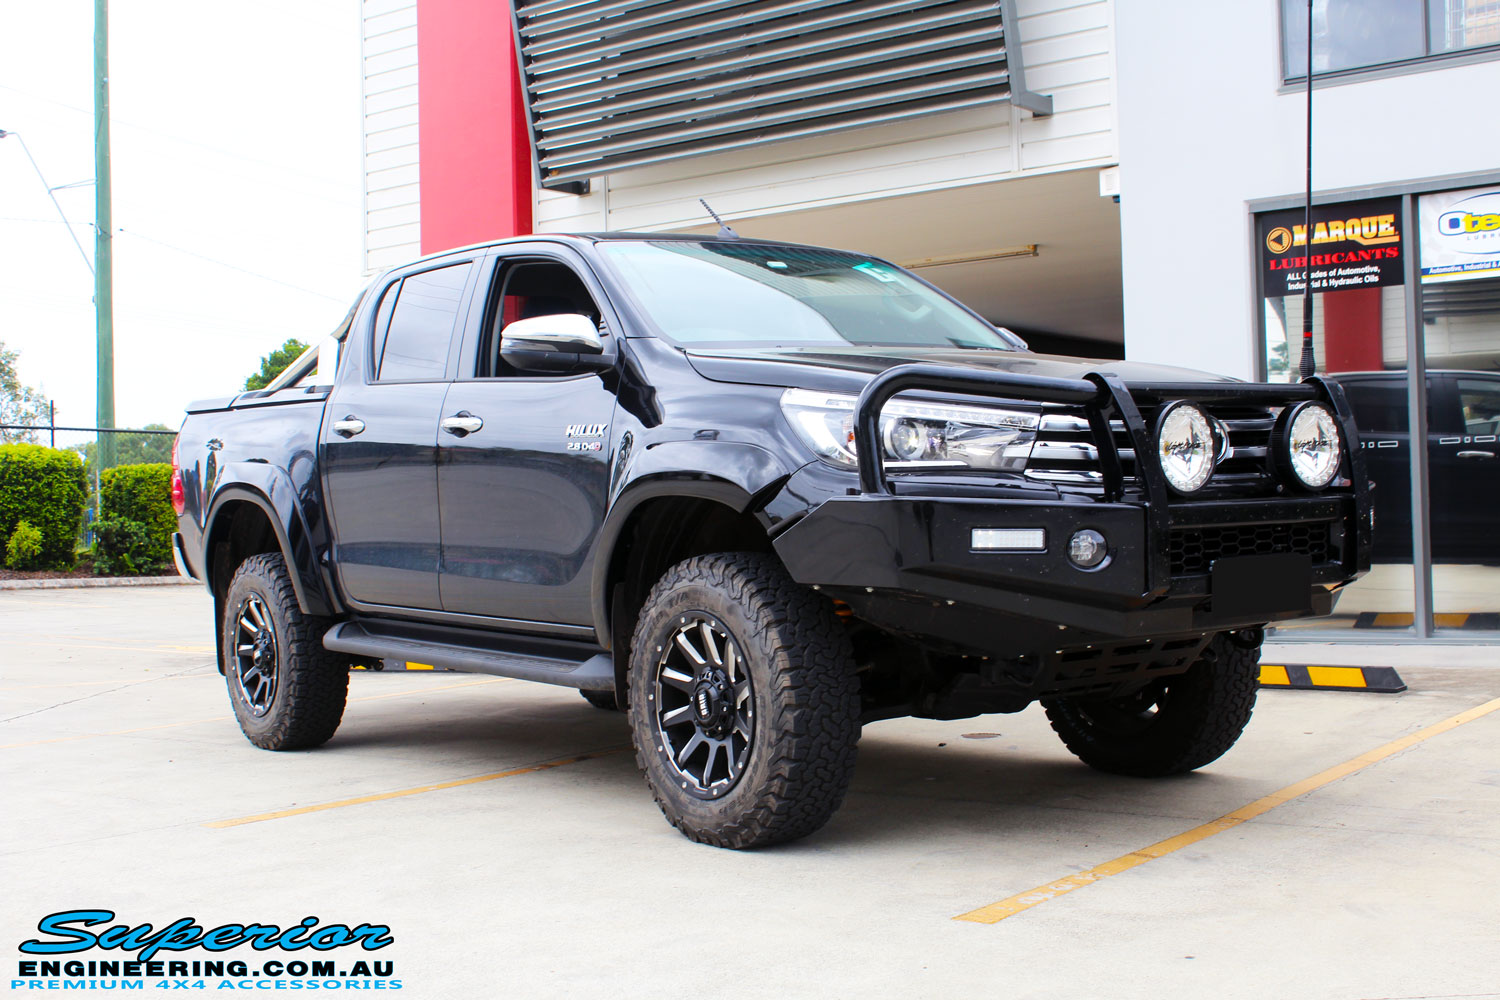 """Right front side view of a Black Toyota Hilux Revo after fitting a 2"""" inch lift with Superior Remote Reservoir Rear Shock & Front Strut and Coil & Leaf Springs"""